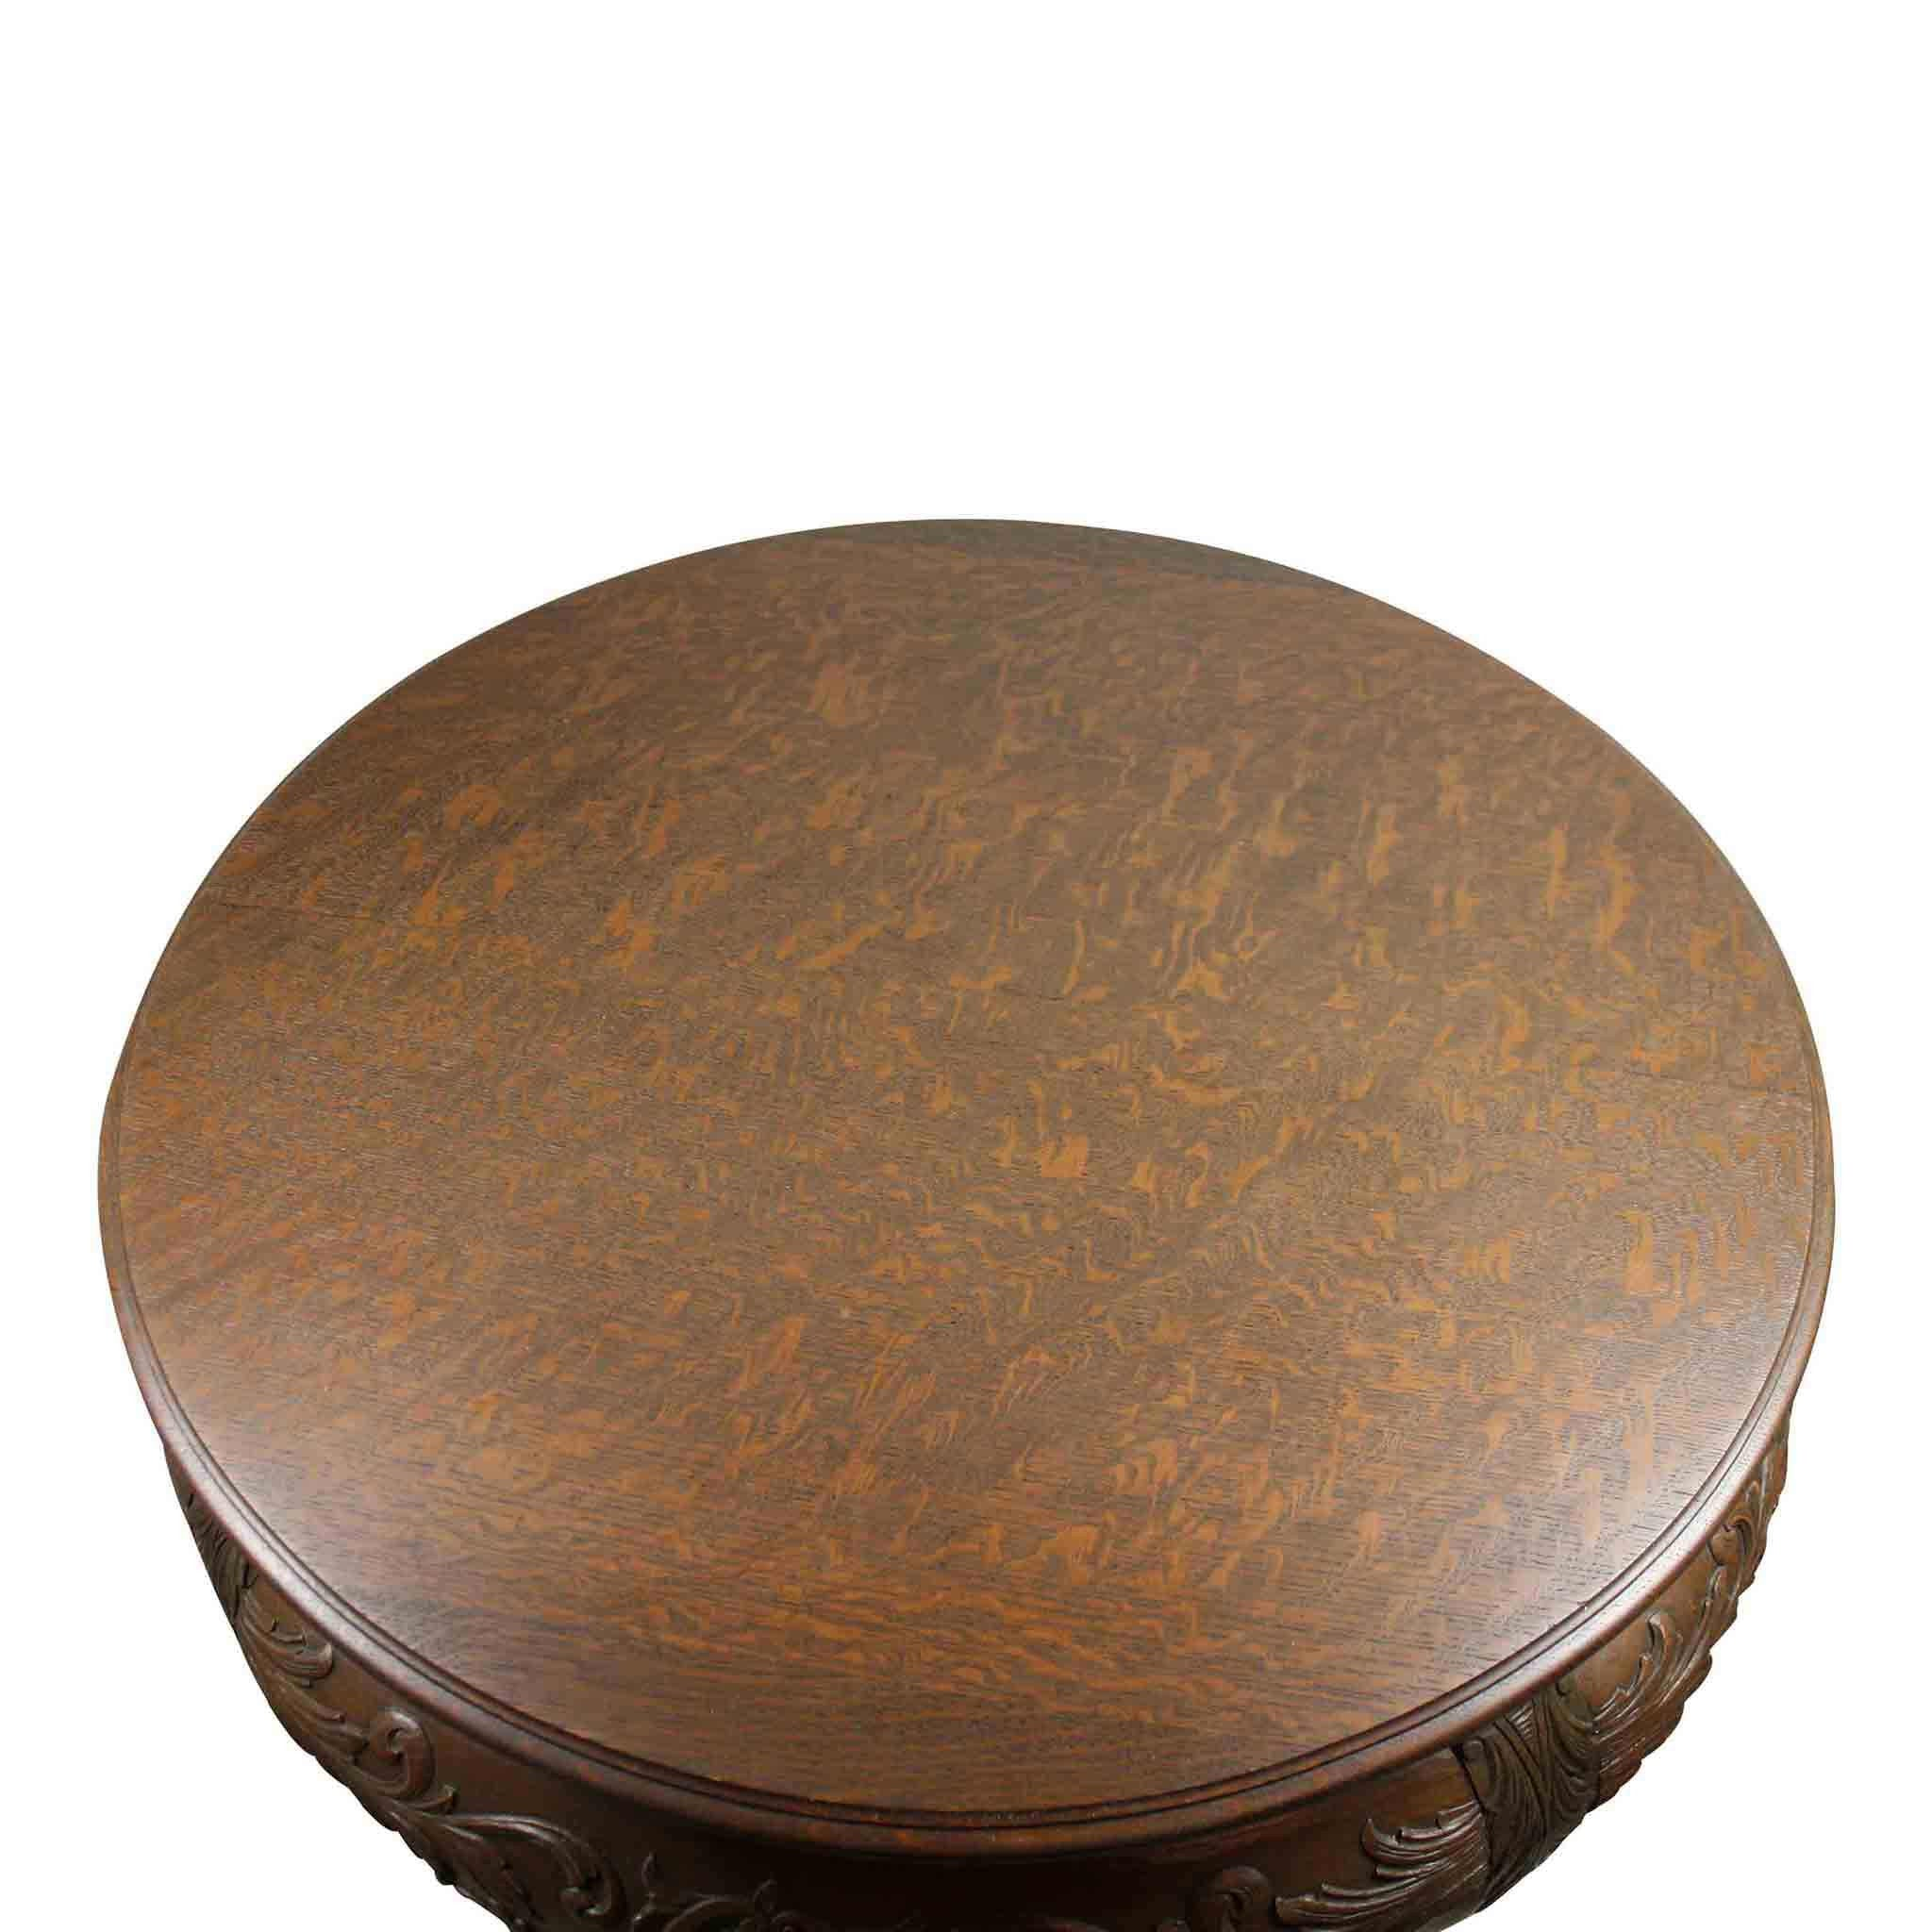 French Round Table (1stdibs)